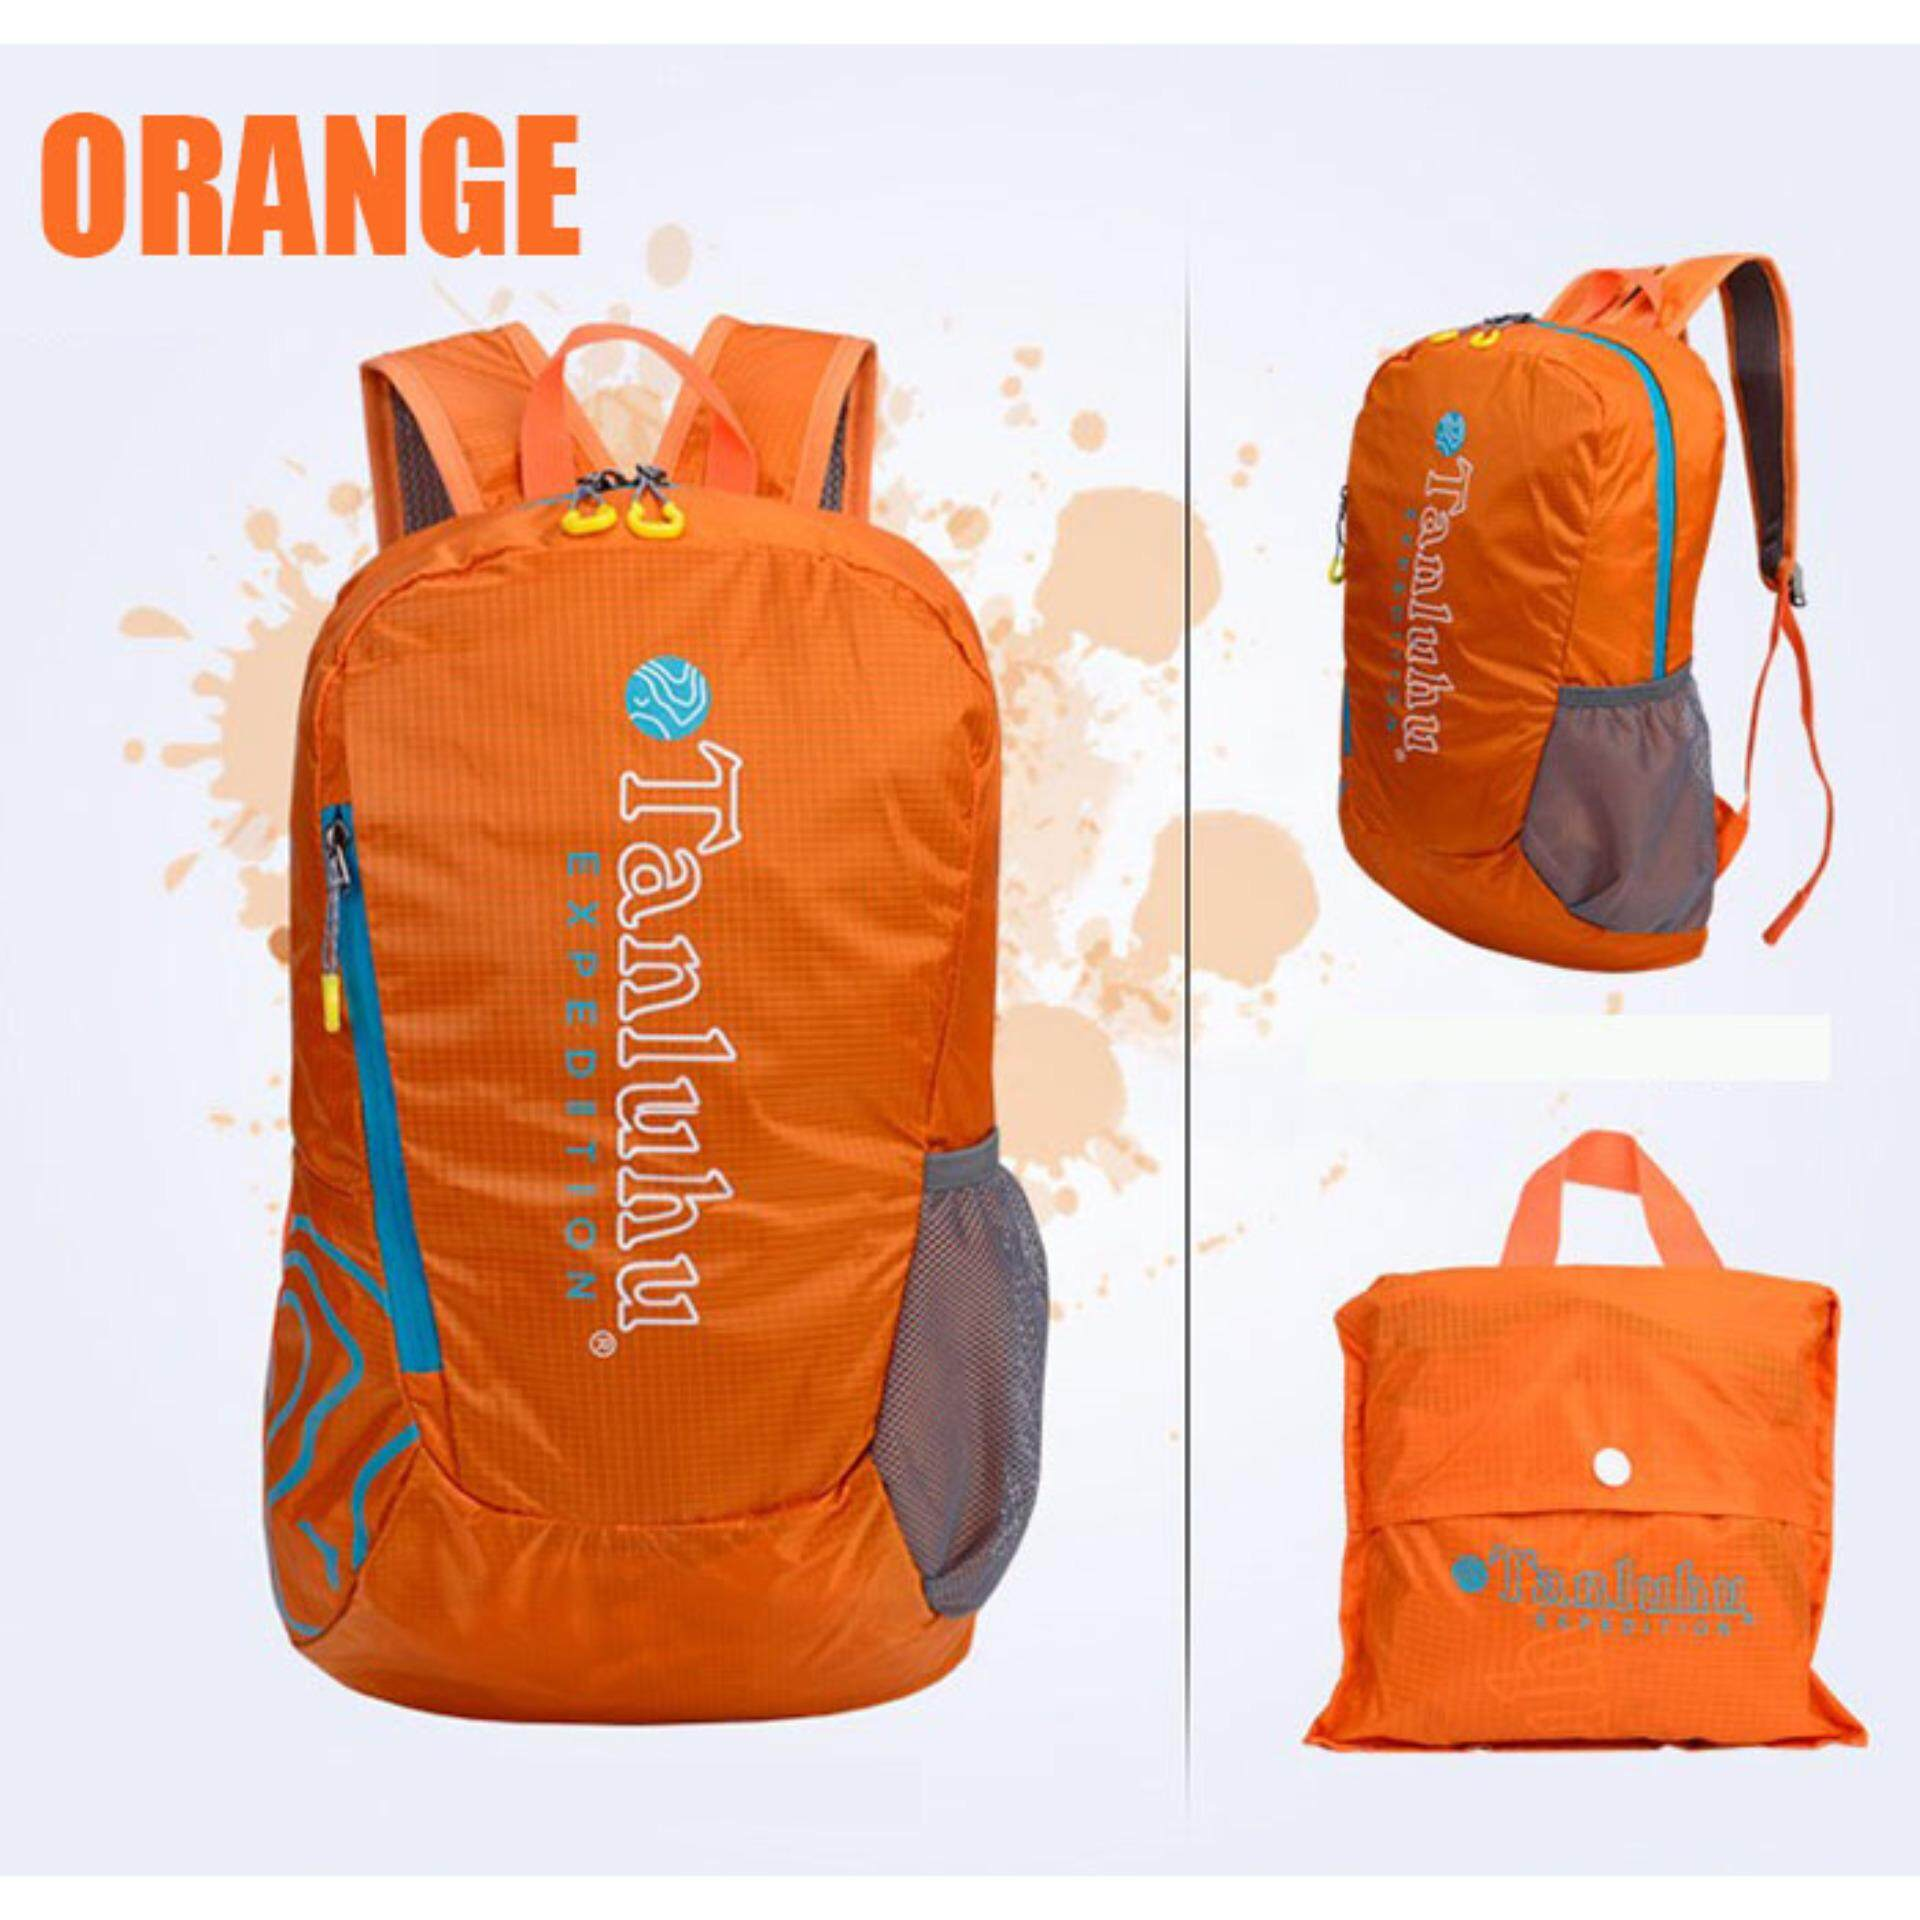 [CLEARANCE SALE] (FREE DELIVERY) Tanluhu 20L Travel Backpack Travel Bag Water Resistant Foldable Outdoor Bagpack - ORANGE